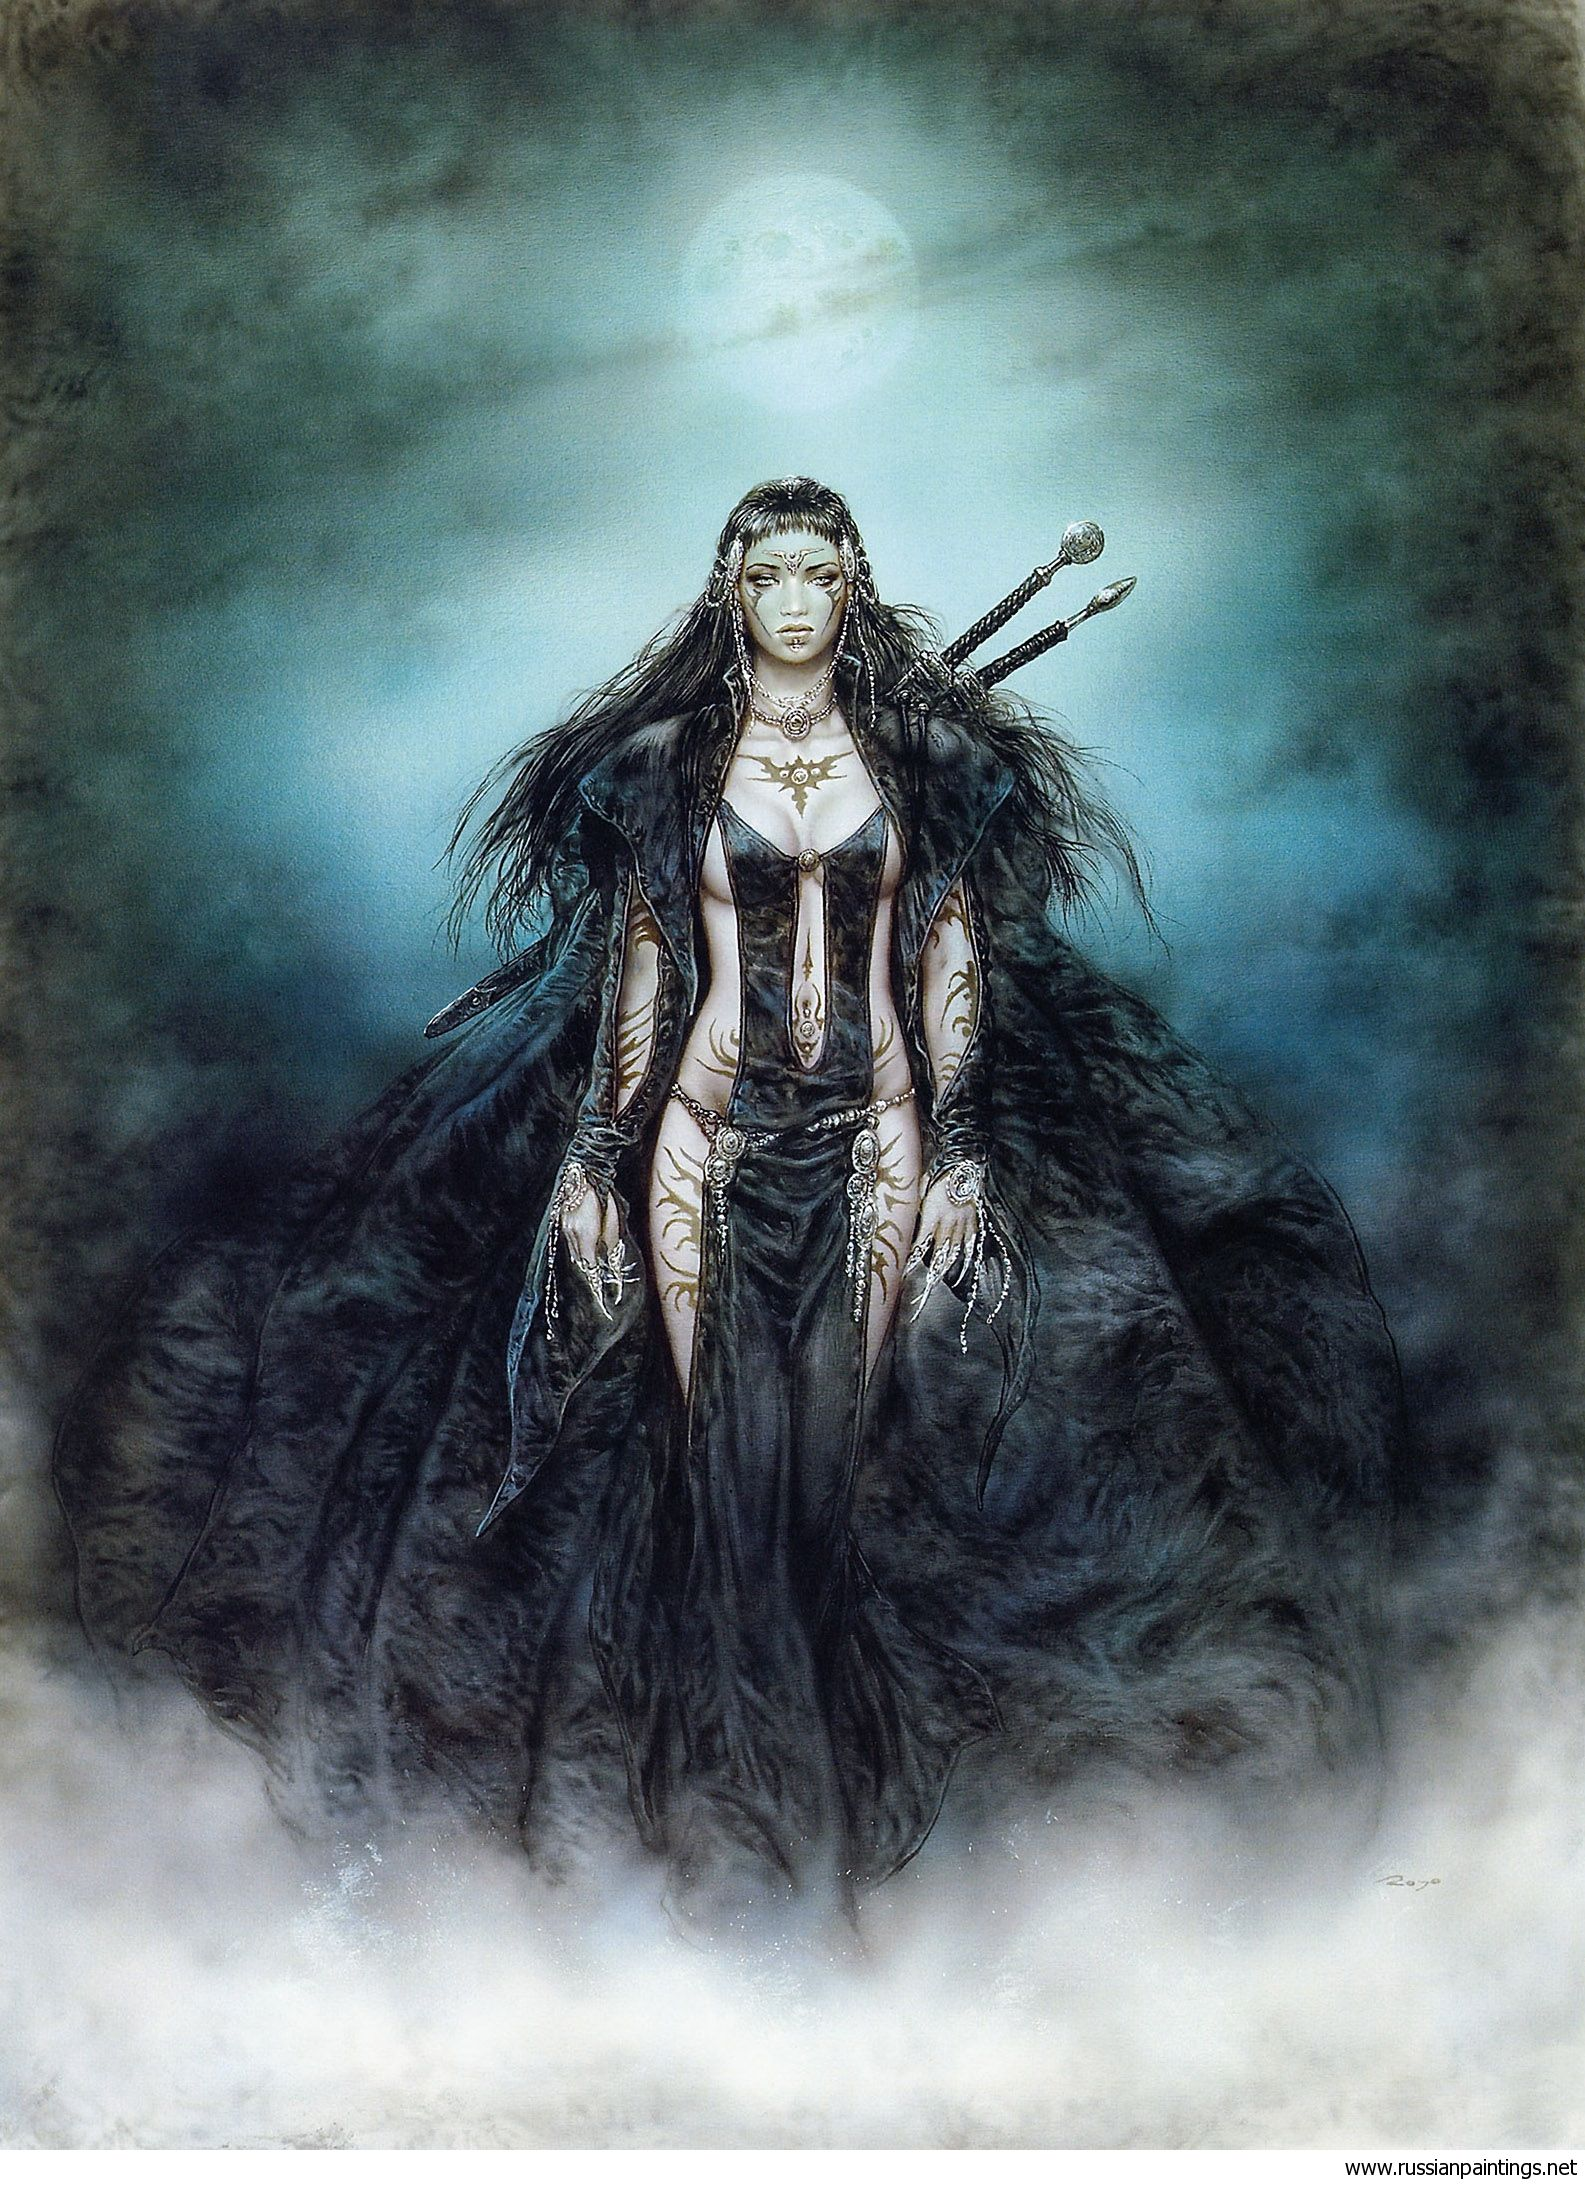 Luis royo female in name pinterest galeras luis royo voltagebd Image collections